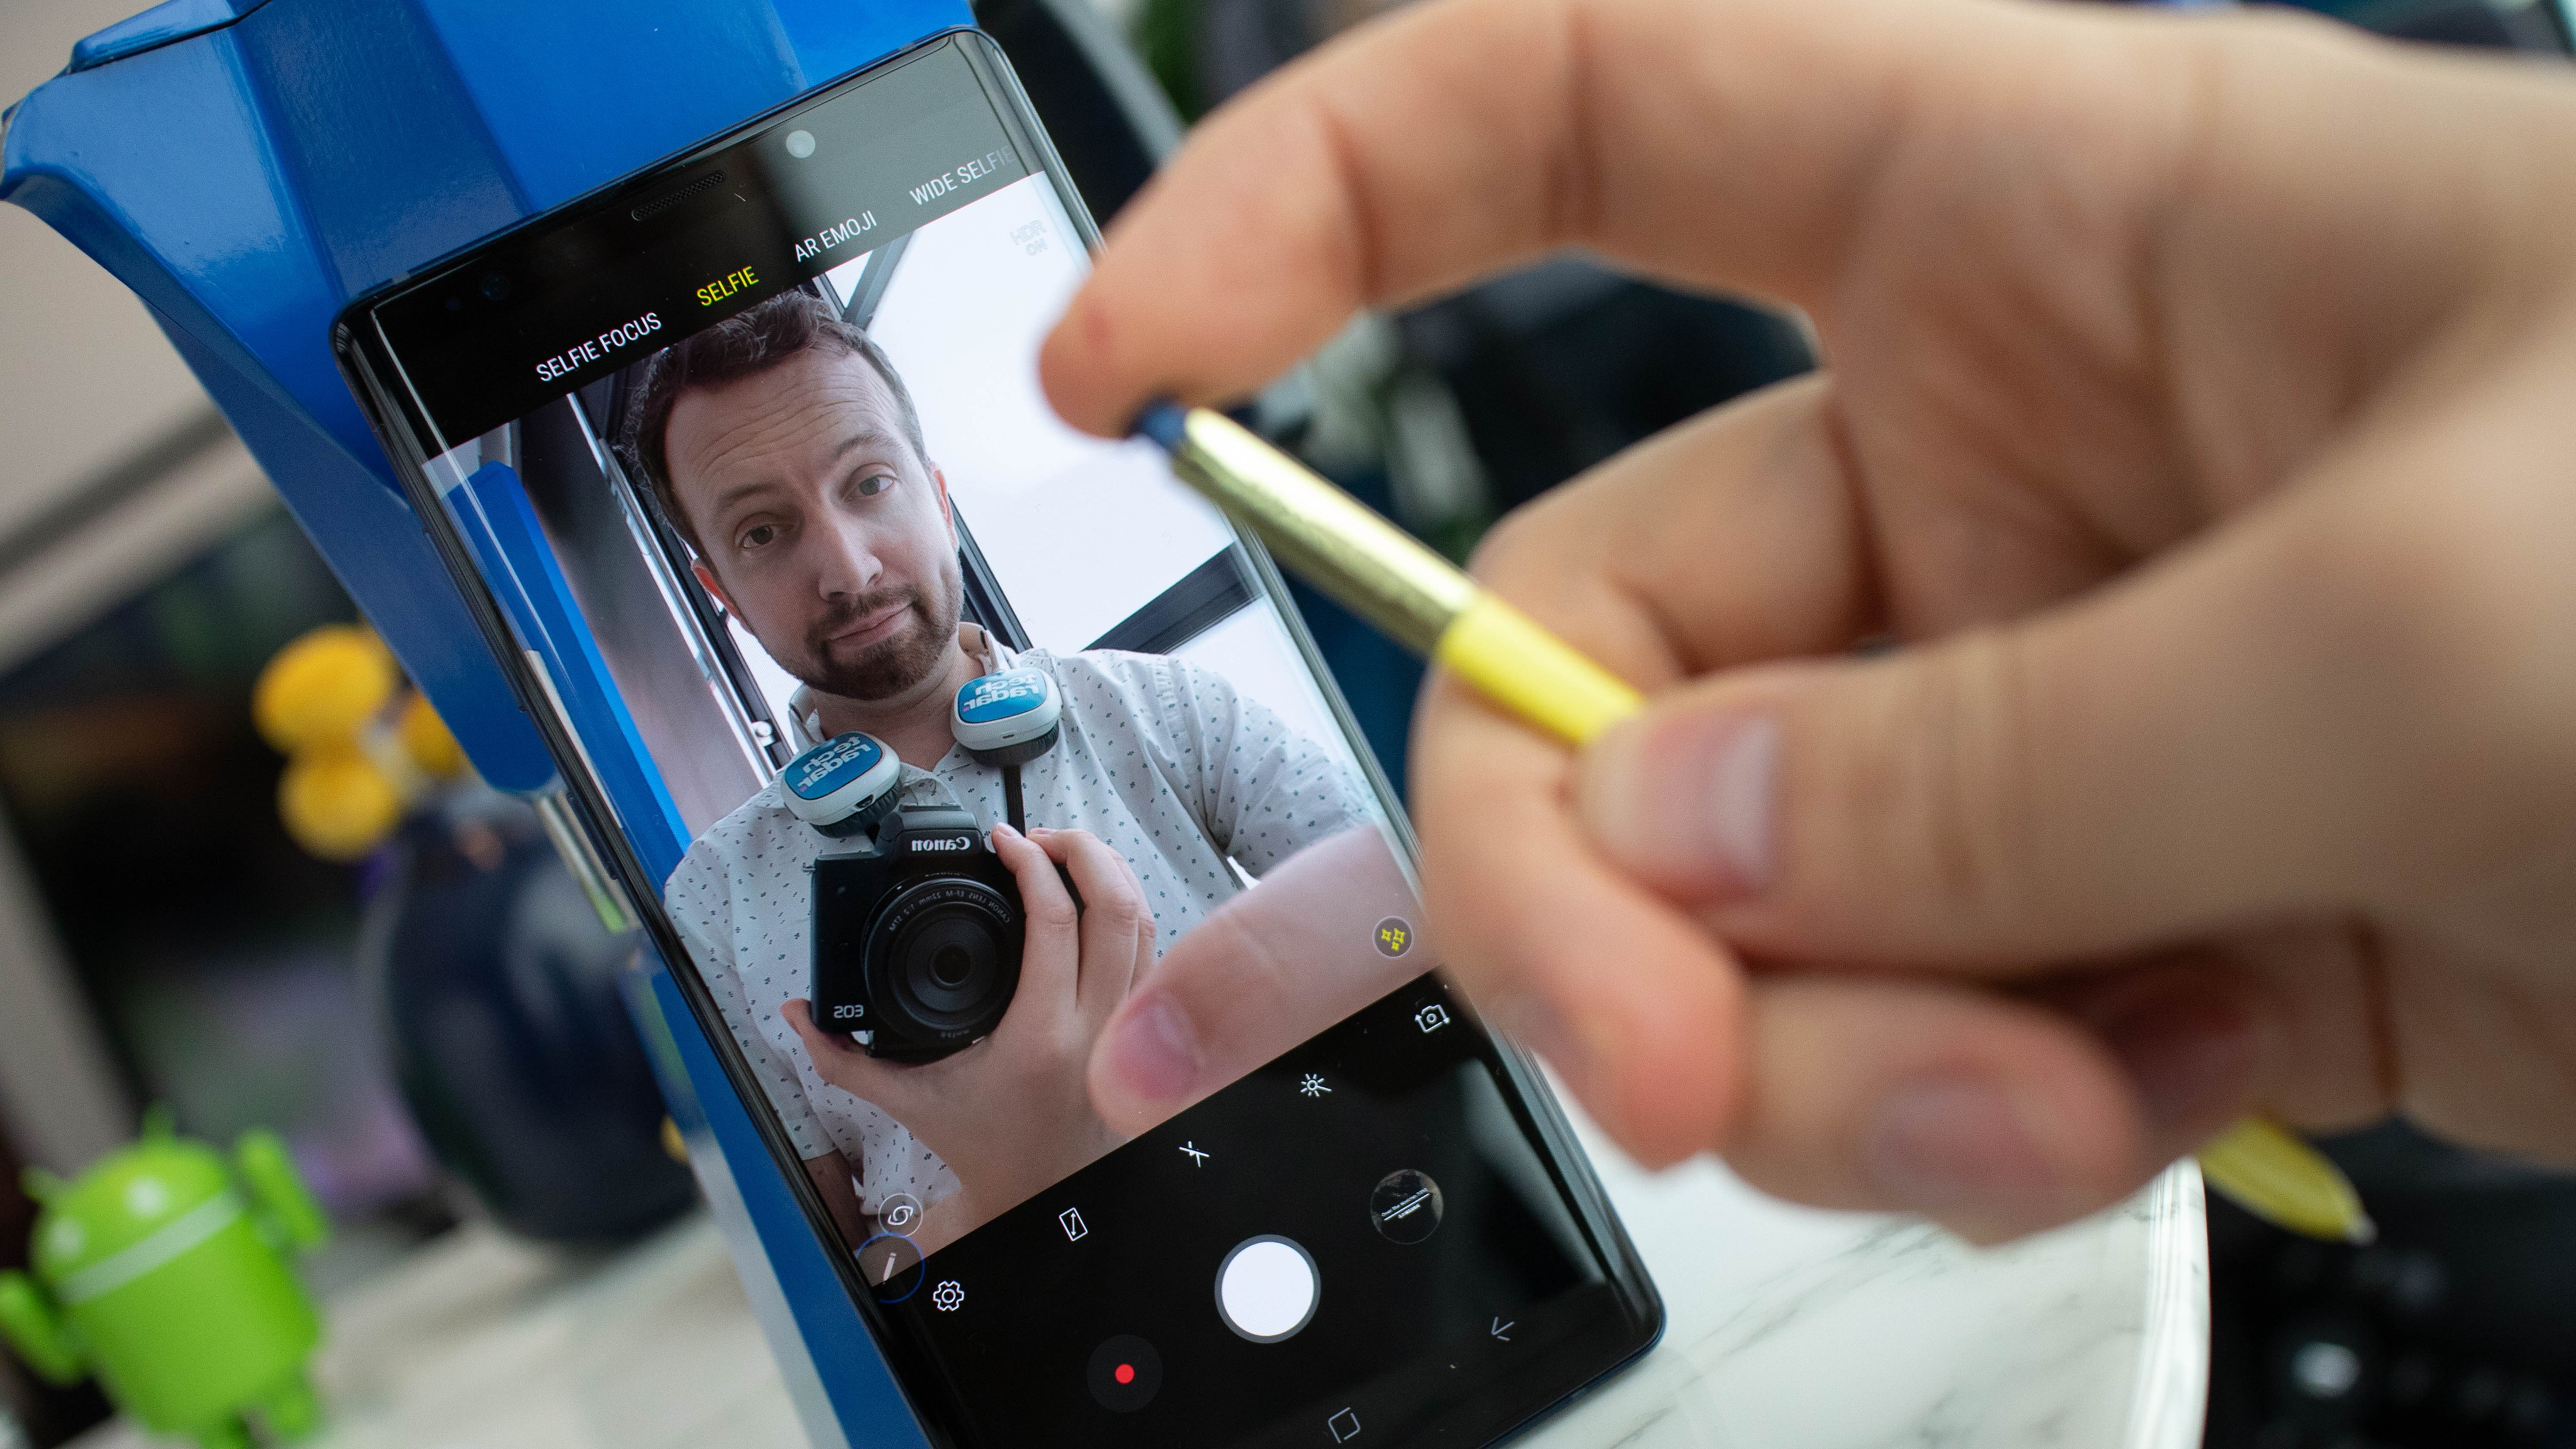 72 hours with Samsung Galaxy Note 9: the camera, battery, and screen